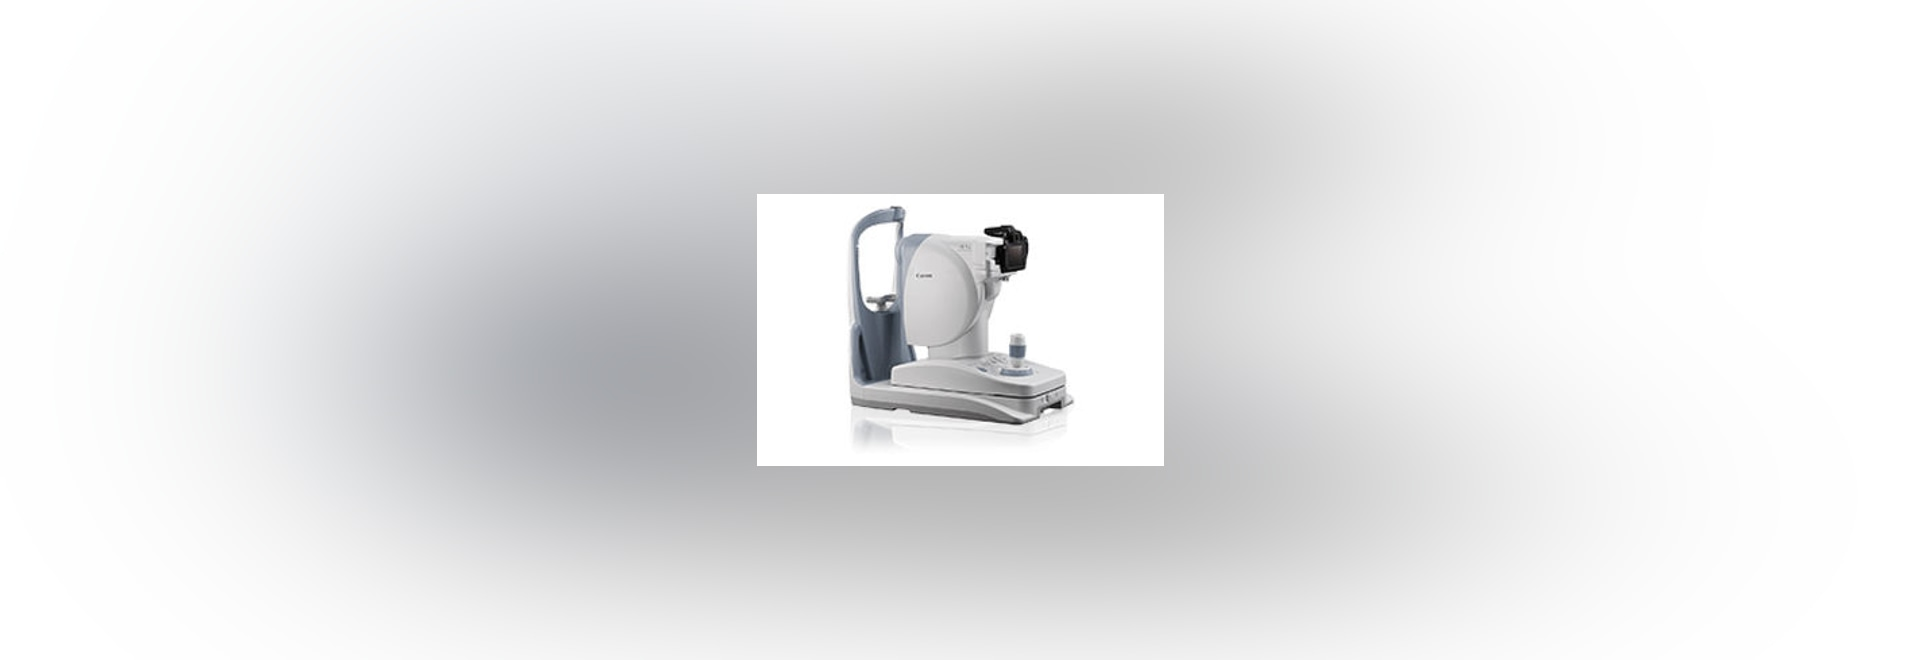 CR-2 AF by Canon - Digital non-mydriatic retinal camera